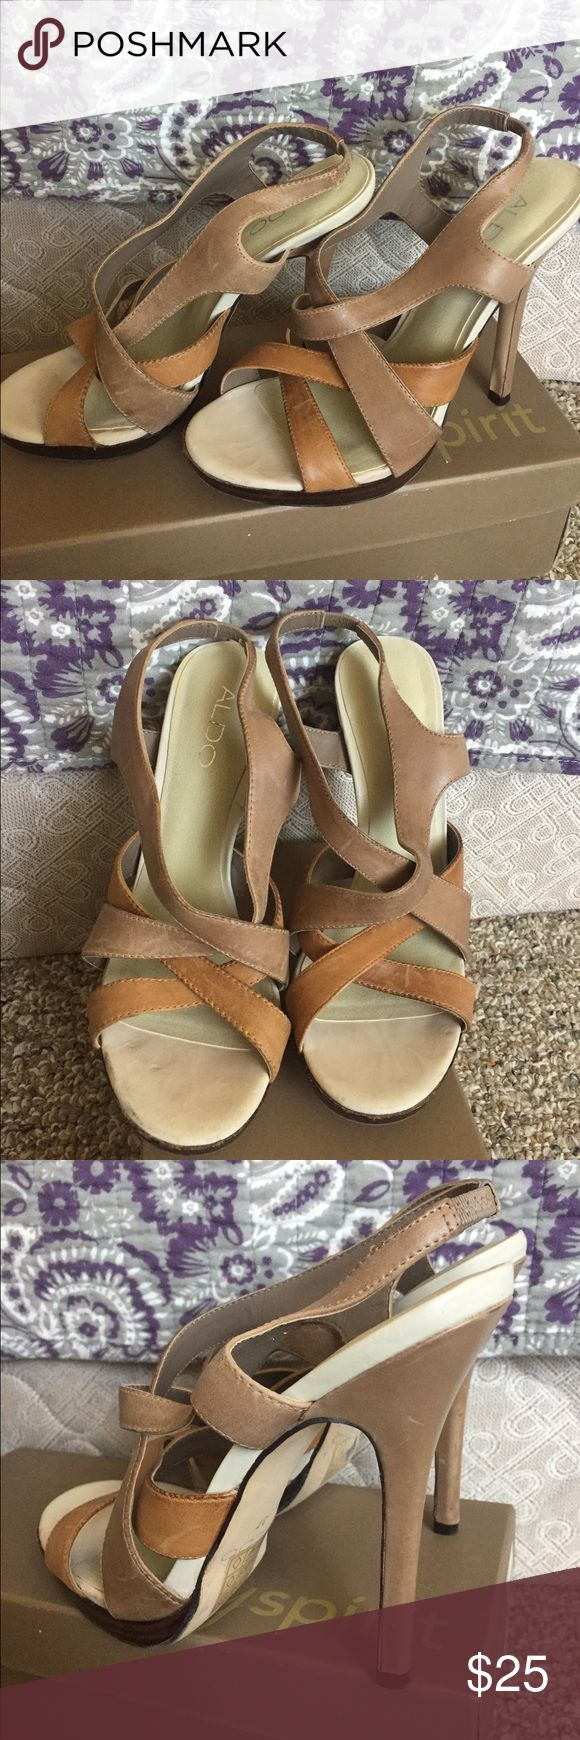 Neutral colored sandals from Aldo Great neutral sandals. Goes with pretty kick everything! Worn twice. Very versatile and stylish. Size 7 ALDO Shoes Sandals